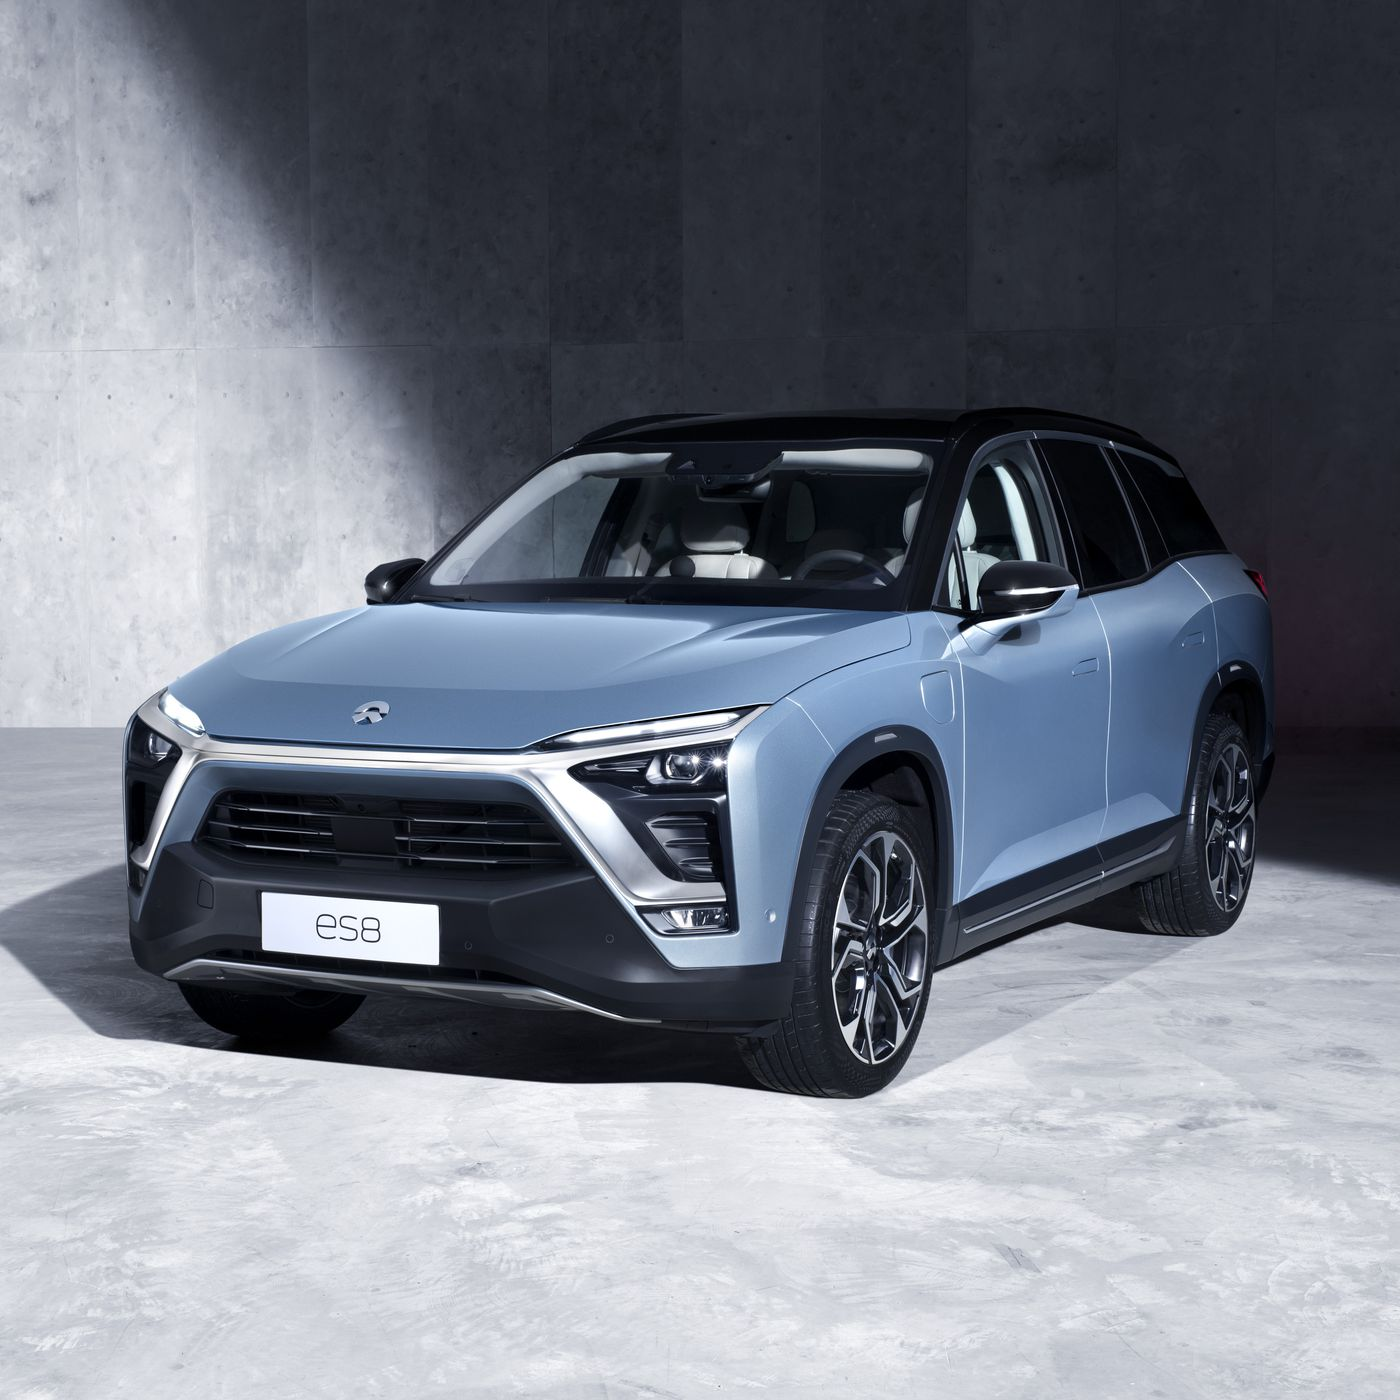 Nio S China Only Electric Suv Will Cost Half As Much As A Tesla Model X The Verge